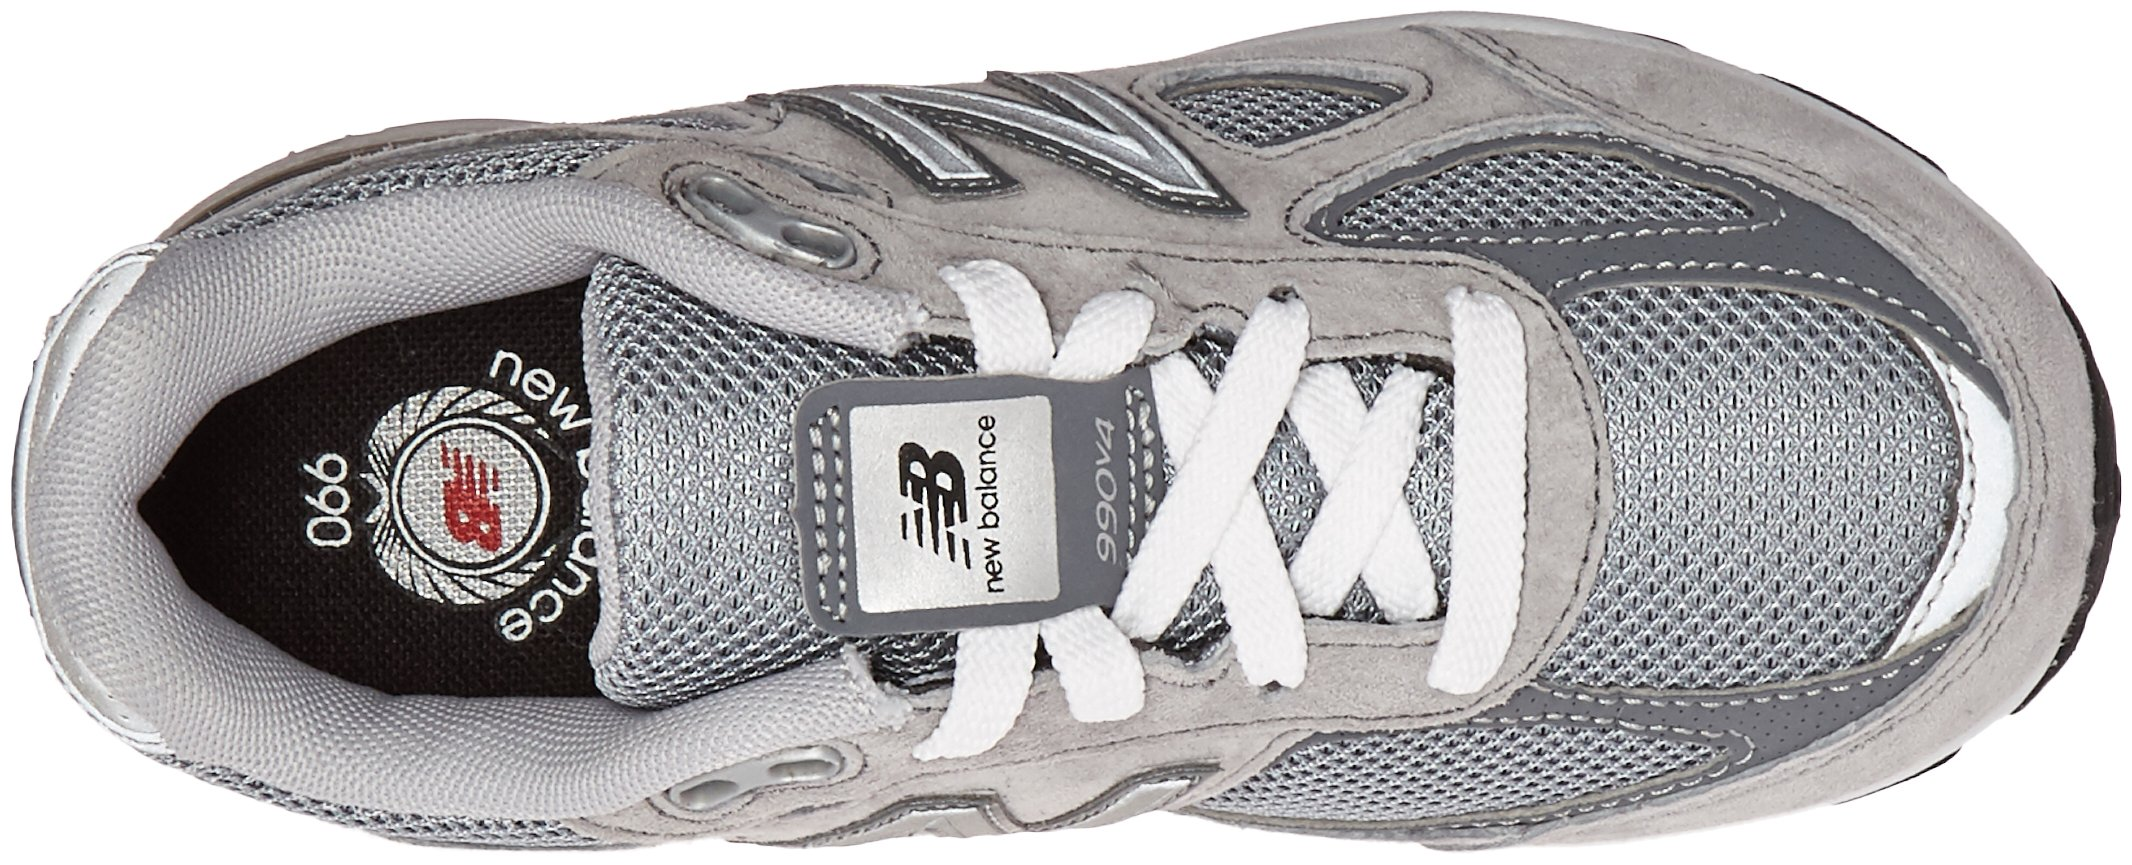 New Balance KJ990V4 Running Shoe (Little Kid/Big Kid), Grey/Grey, 1.5 M US Little Kid by New Balance (Image #8)